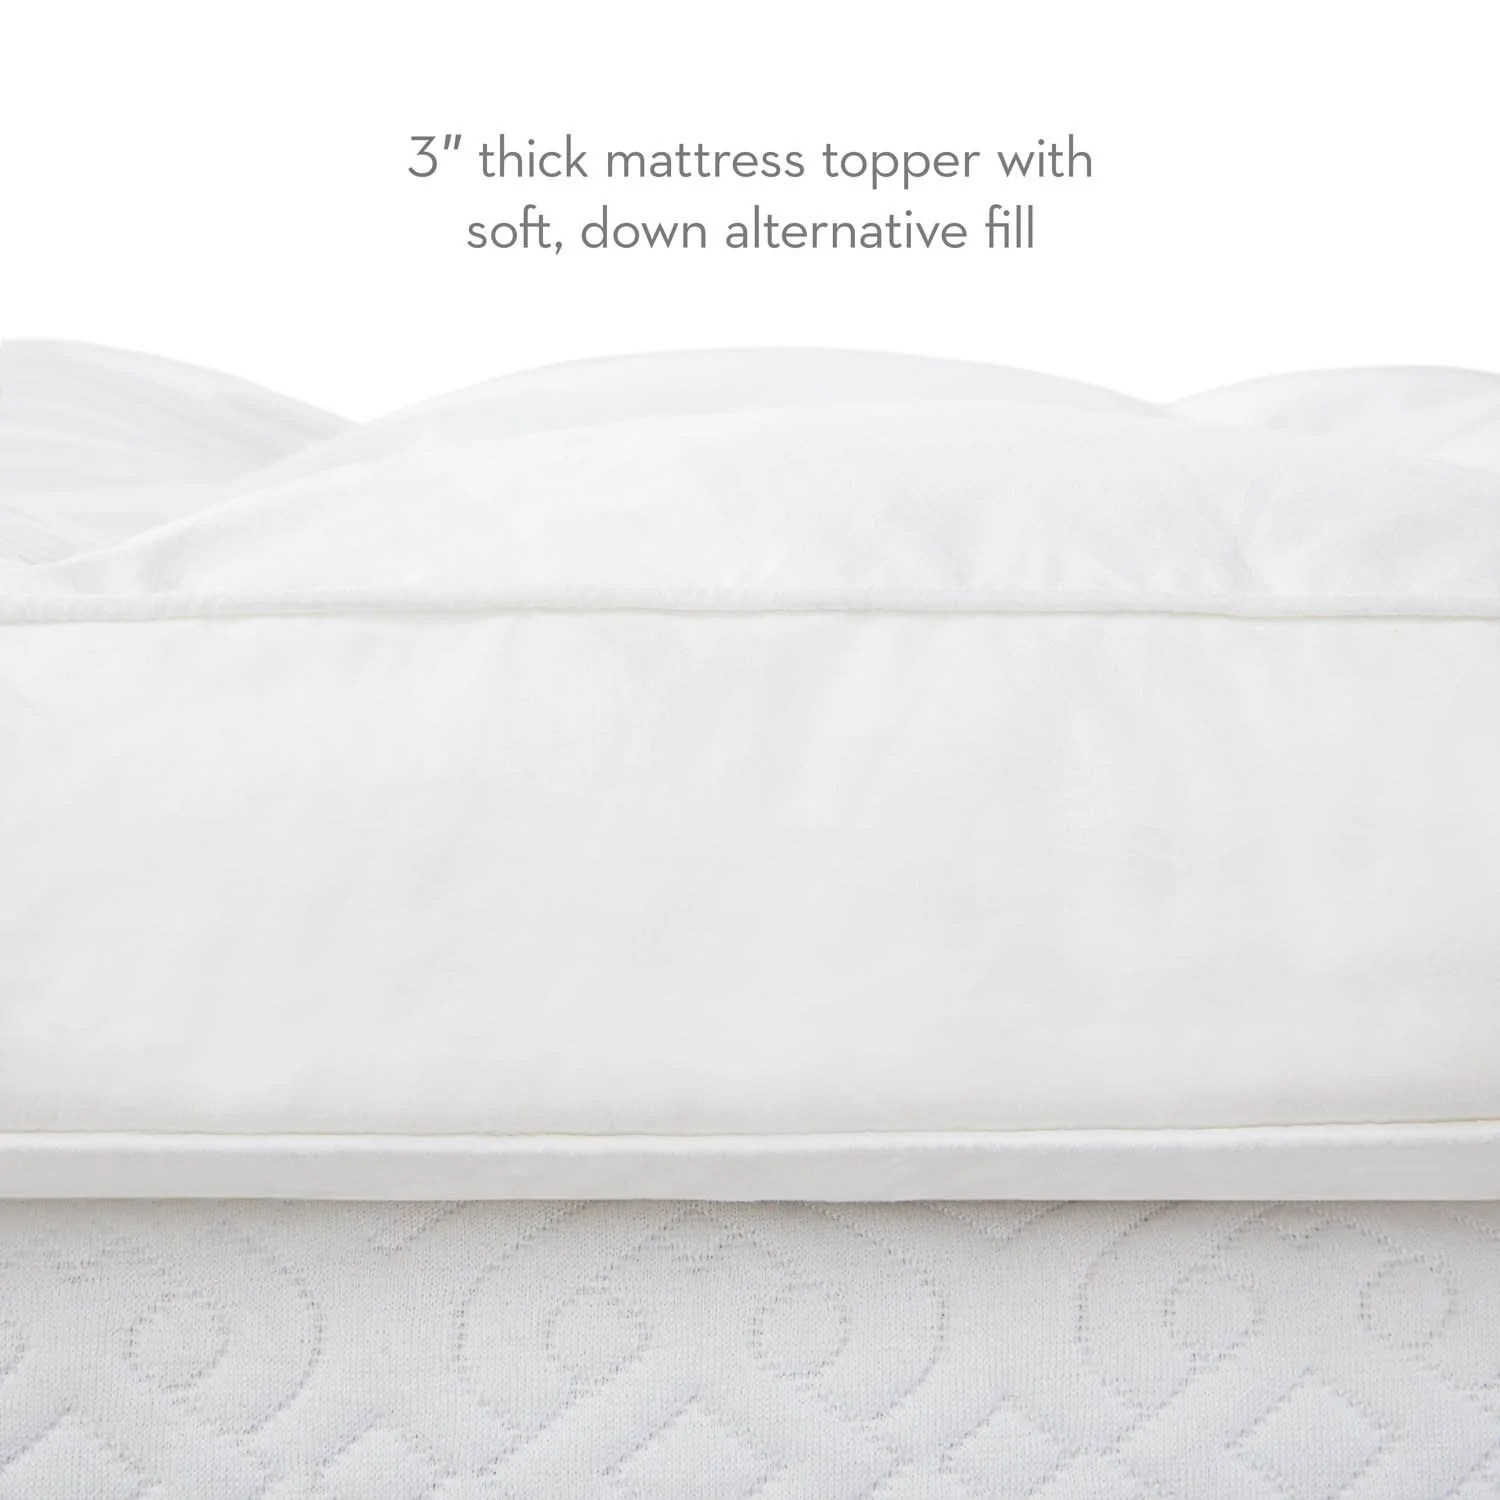 Mattress Topper Thick Isolus 3